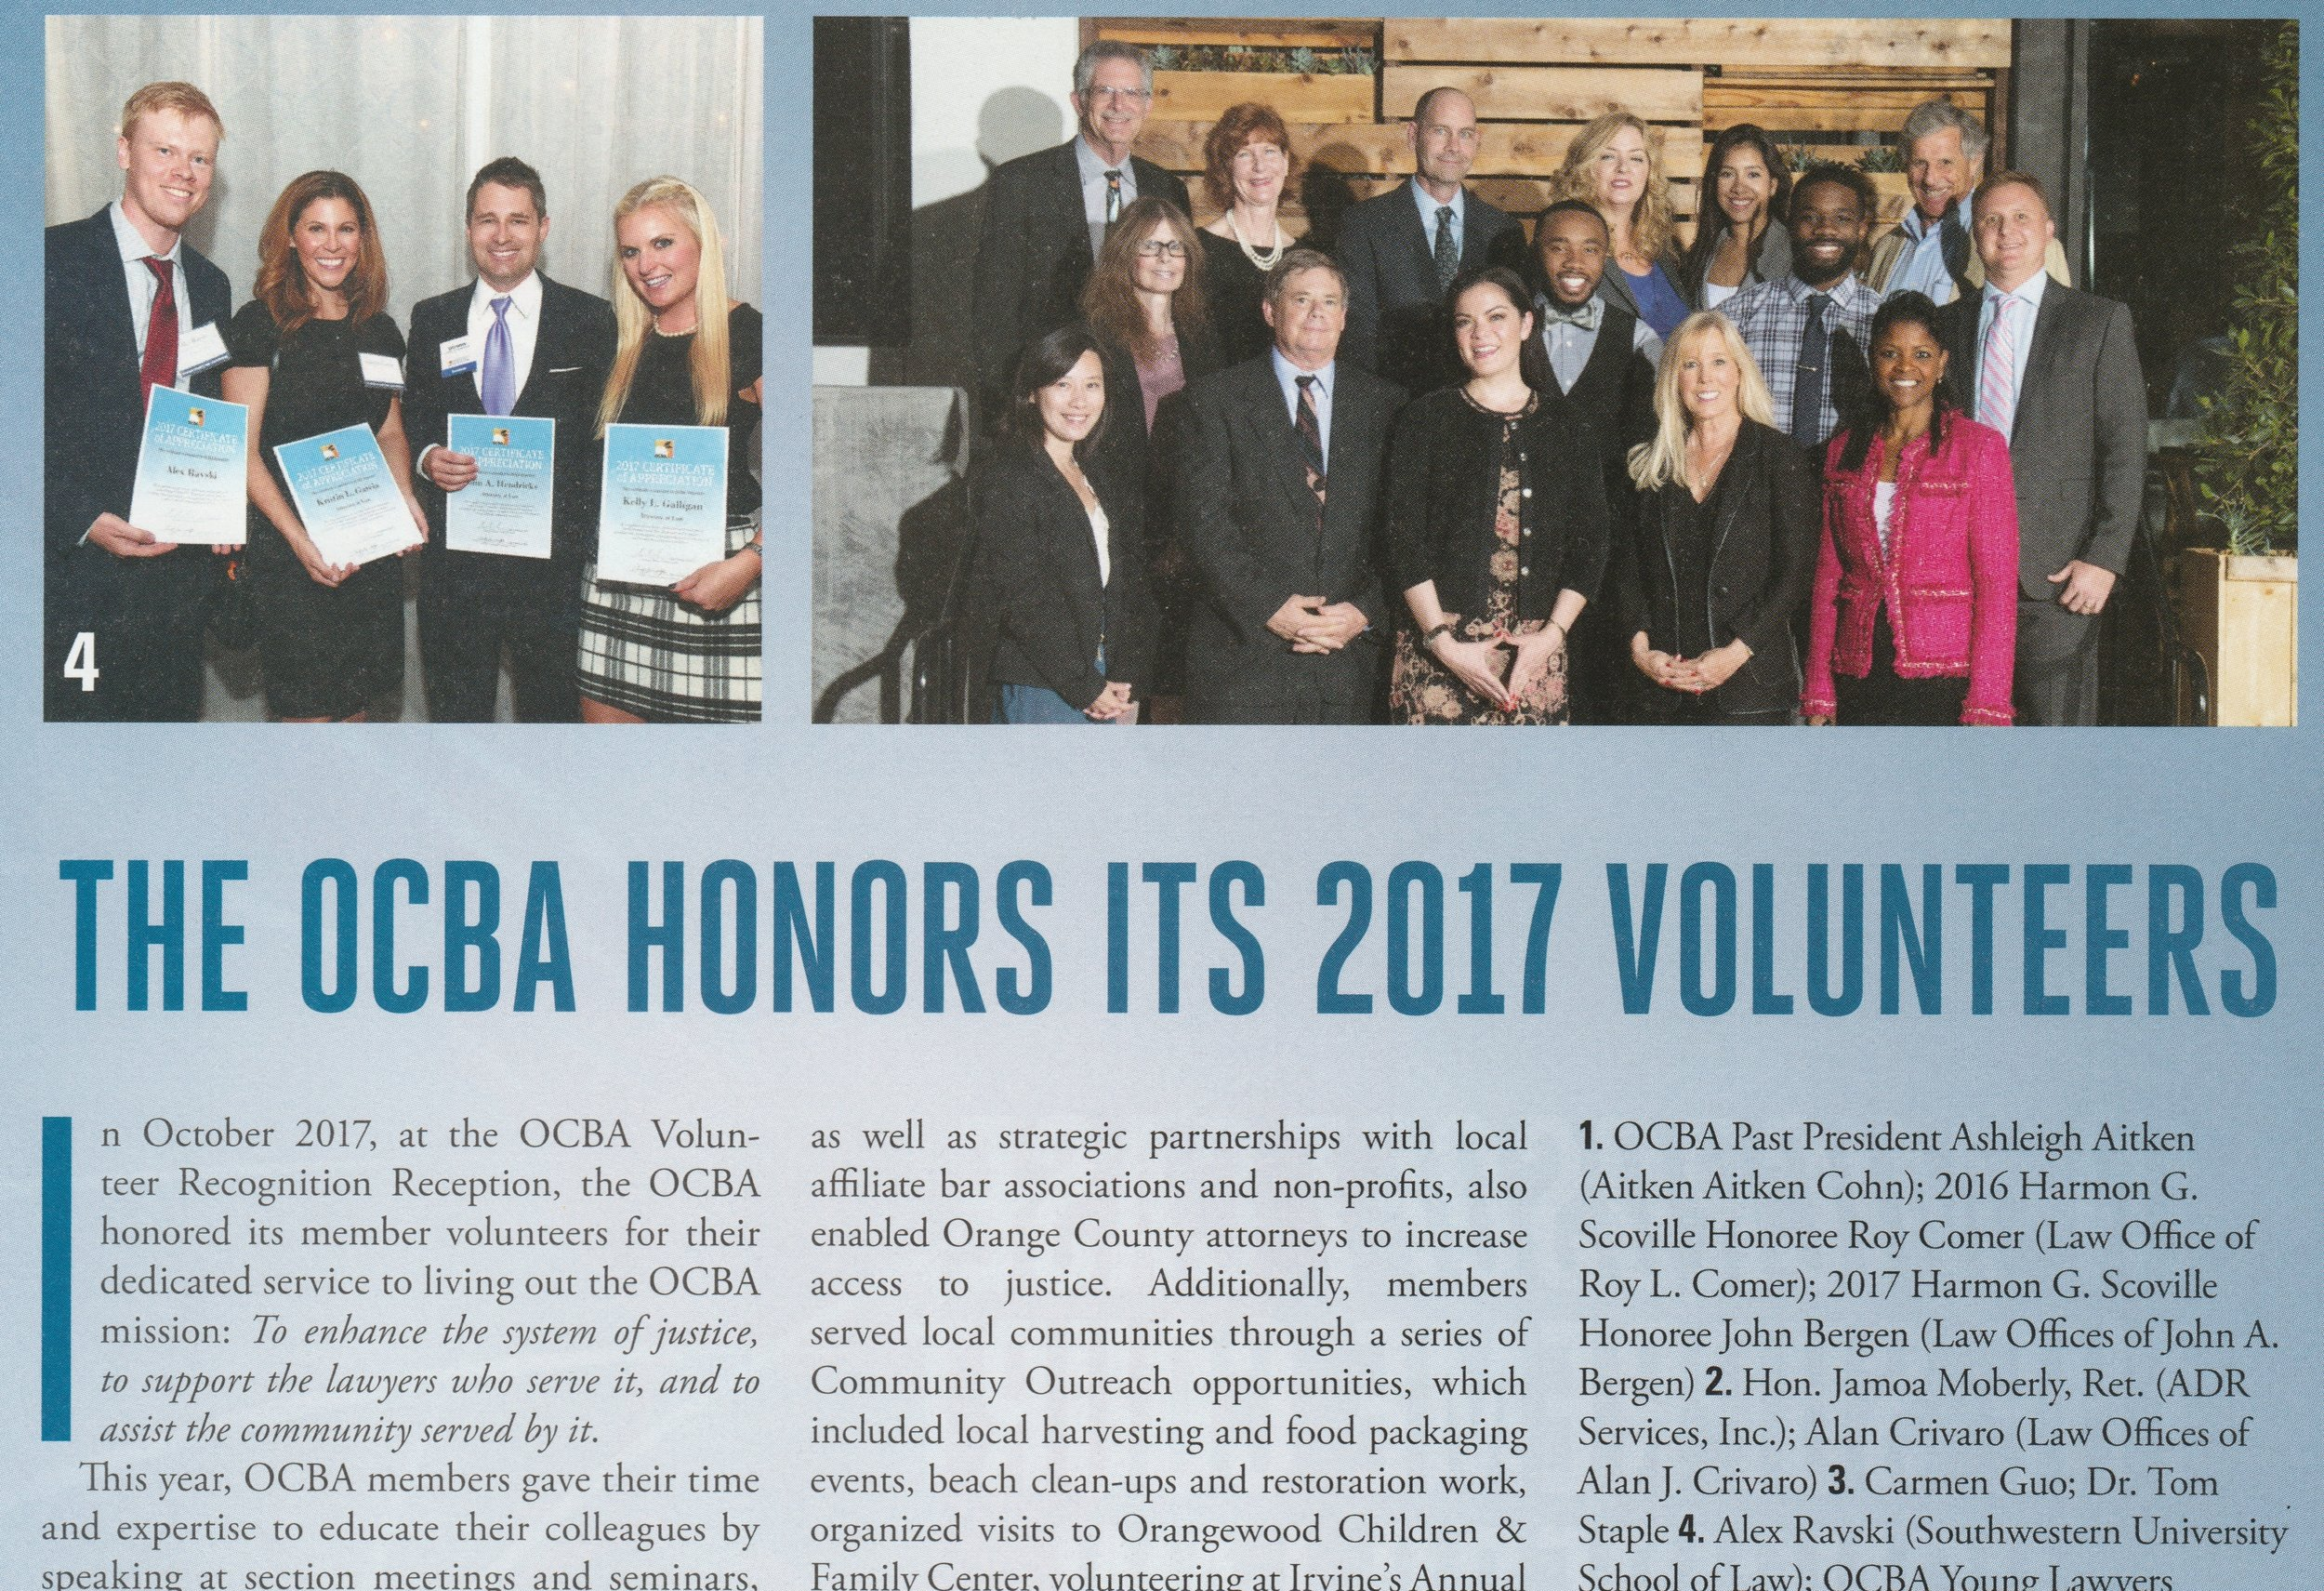 2017 OCBA Volunteers_cropped.jpg